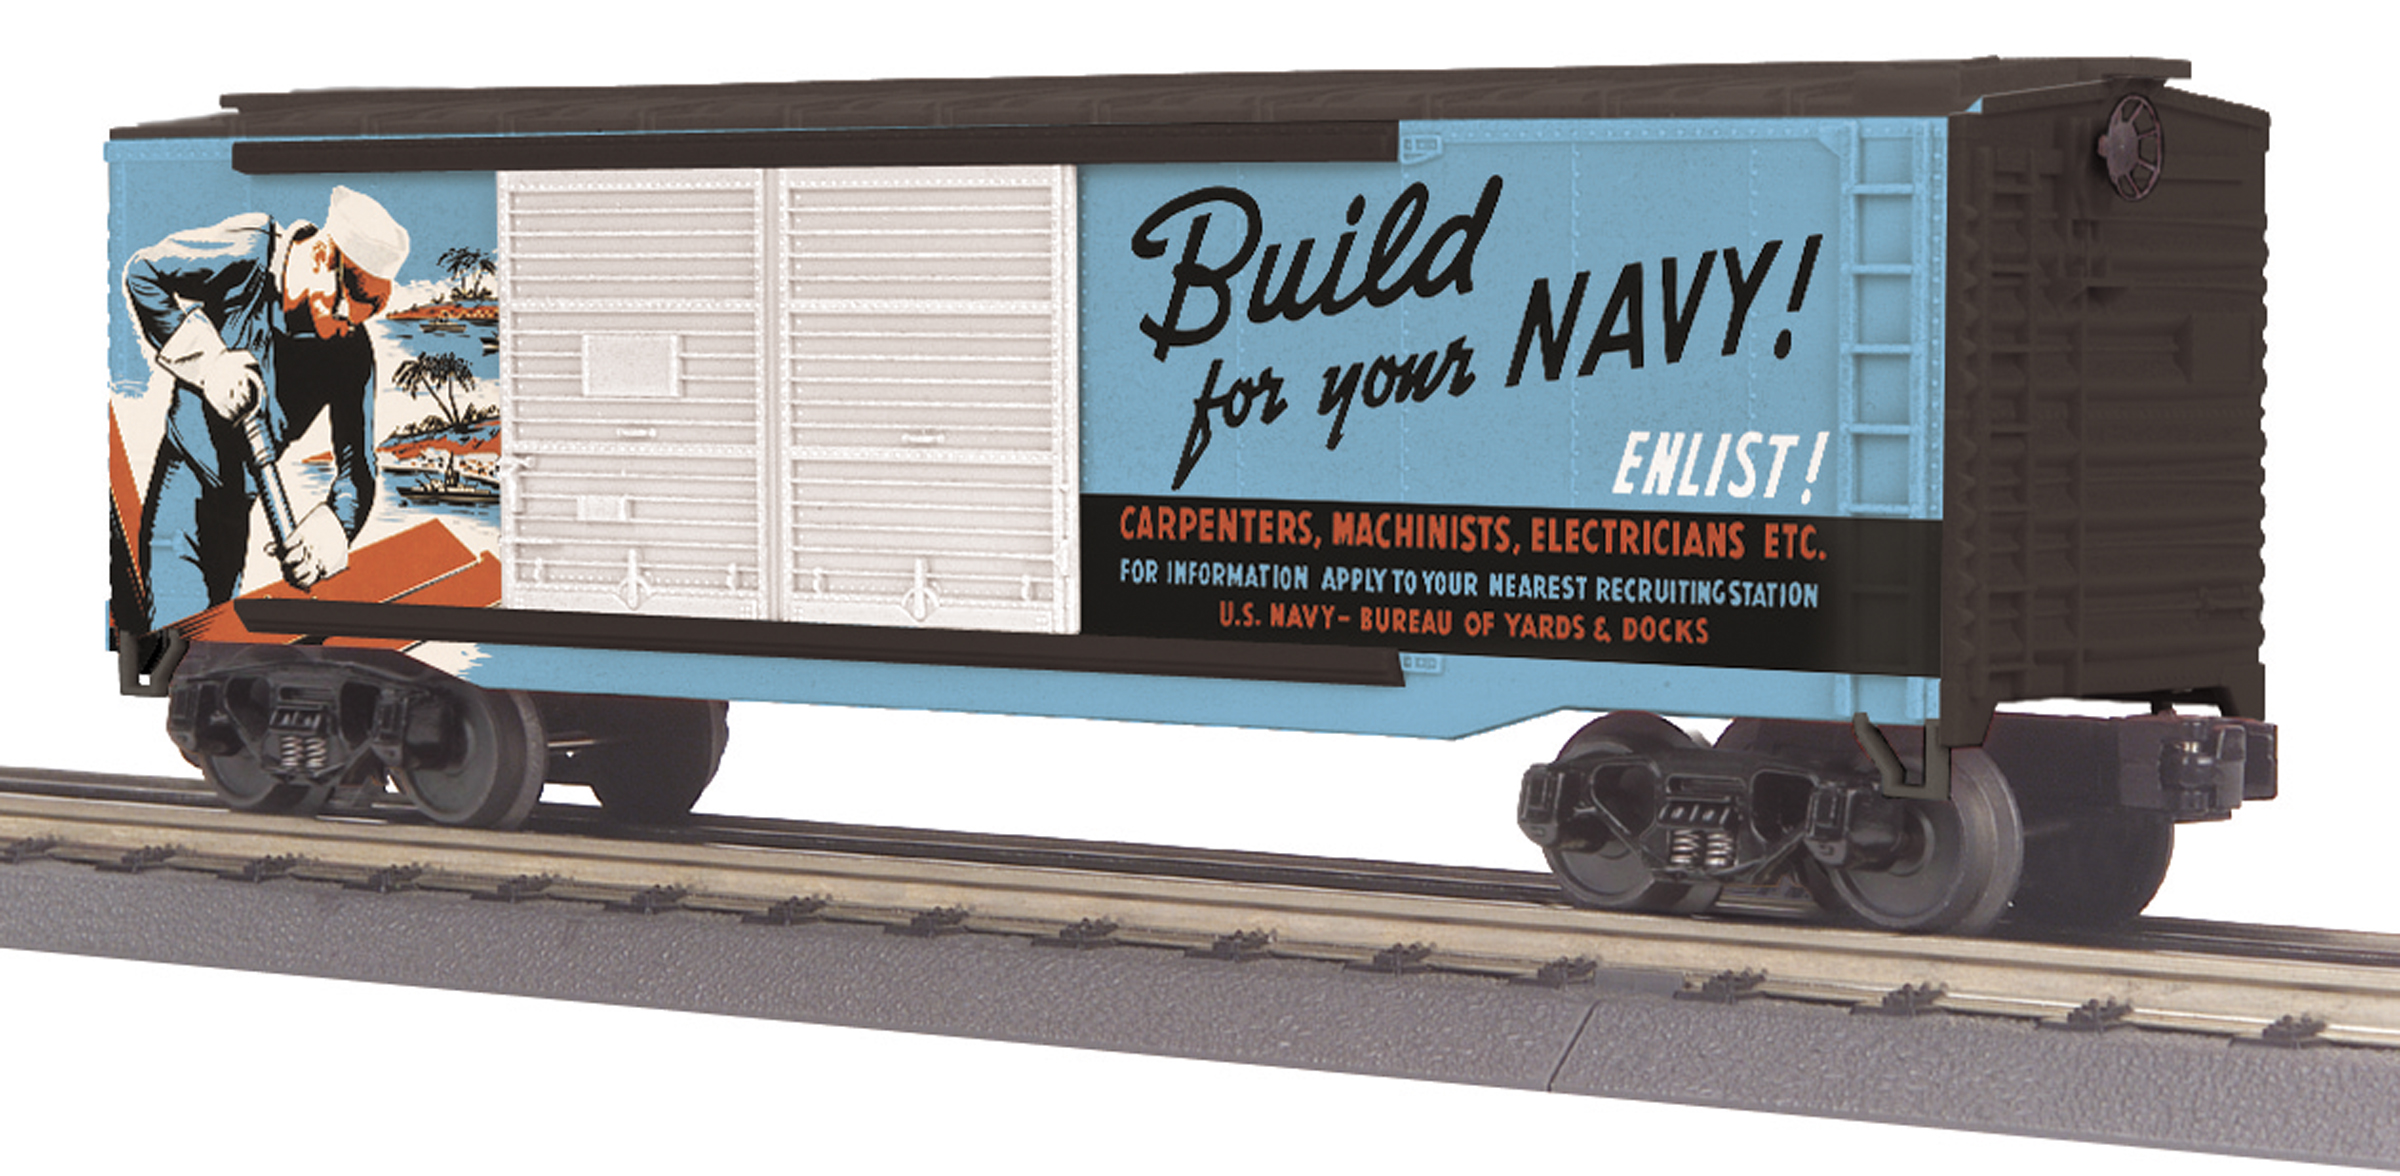 U.S. Navy (Recruitment Poster) 40' Double Door Box Car image